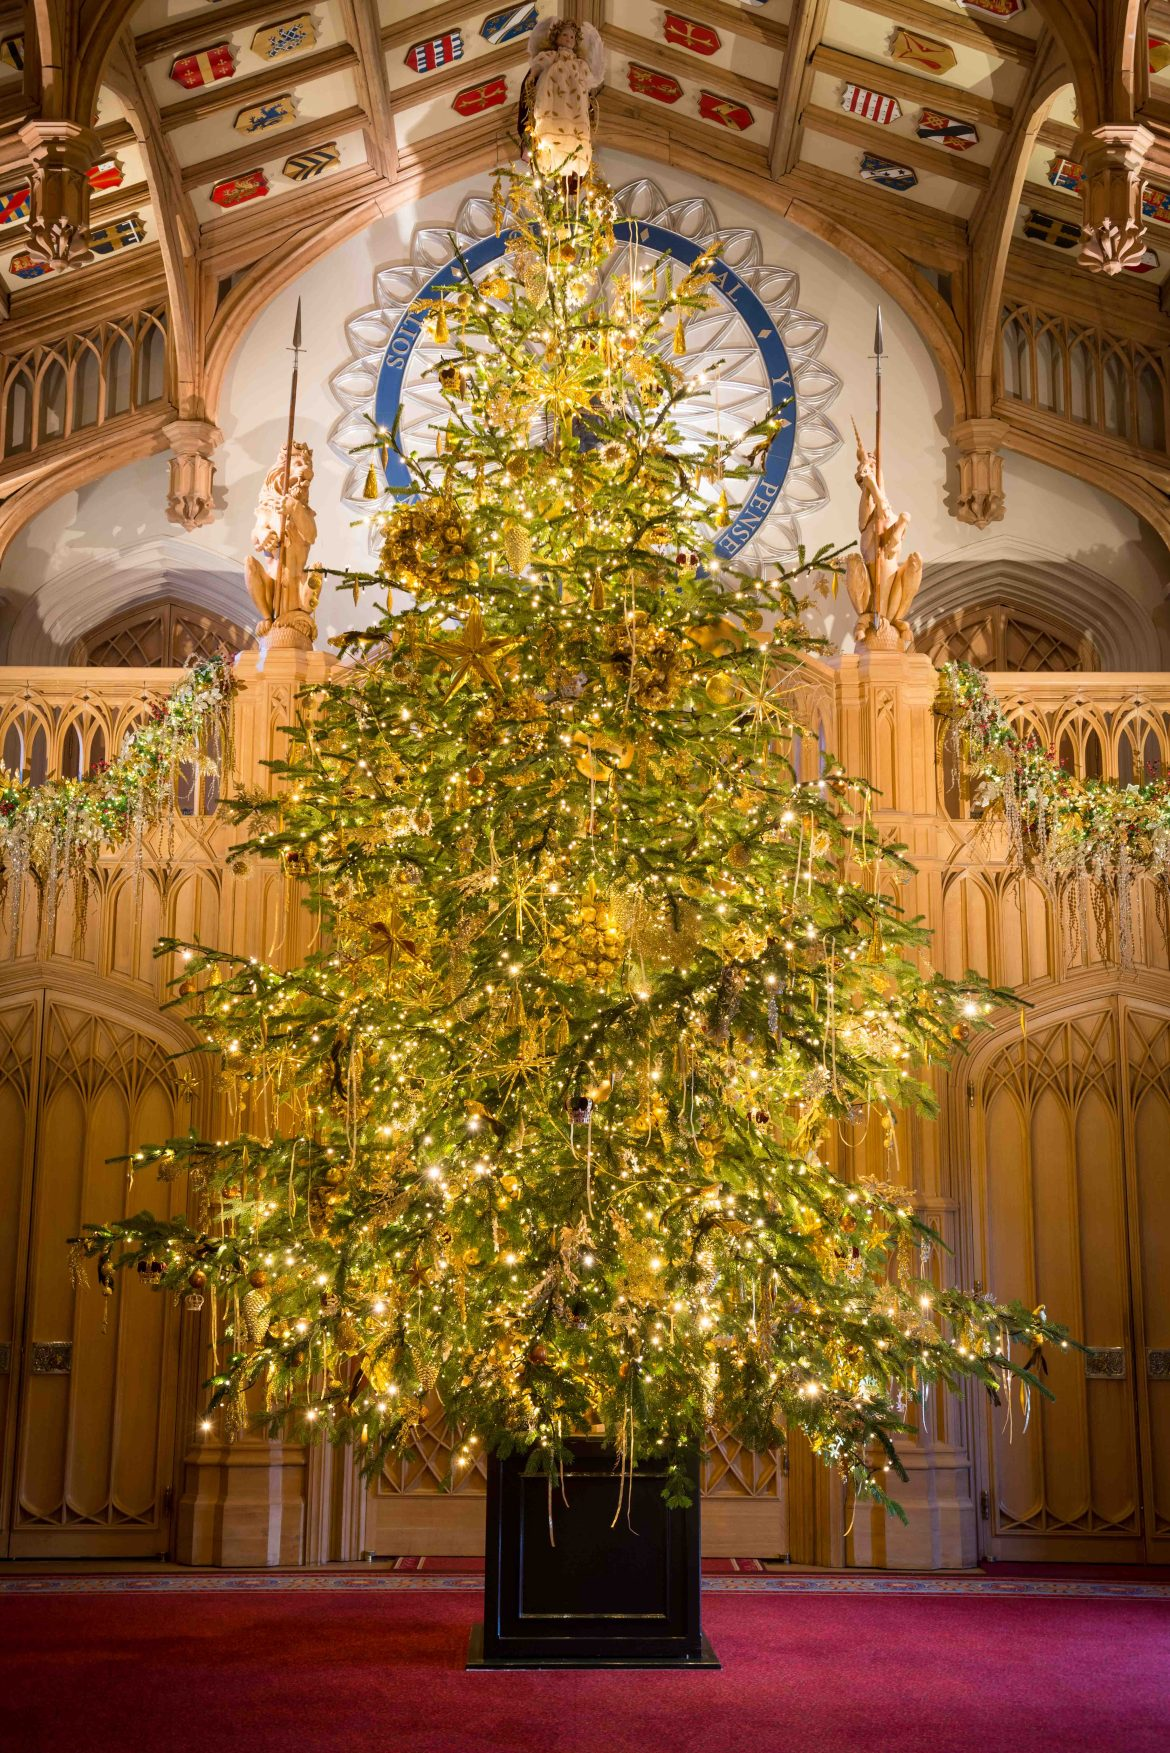 Christmas at Windsor Castle, Royal Collection Trust/(C)Her Majesty Queen Elizabeth II 2017